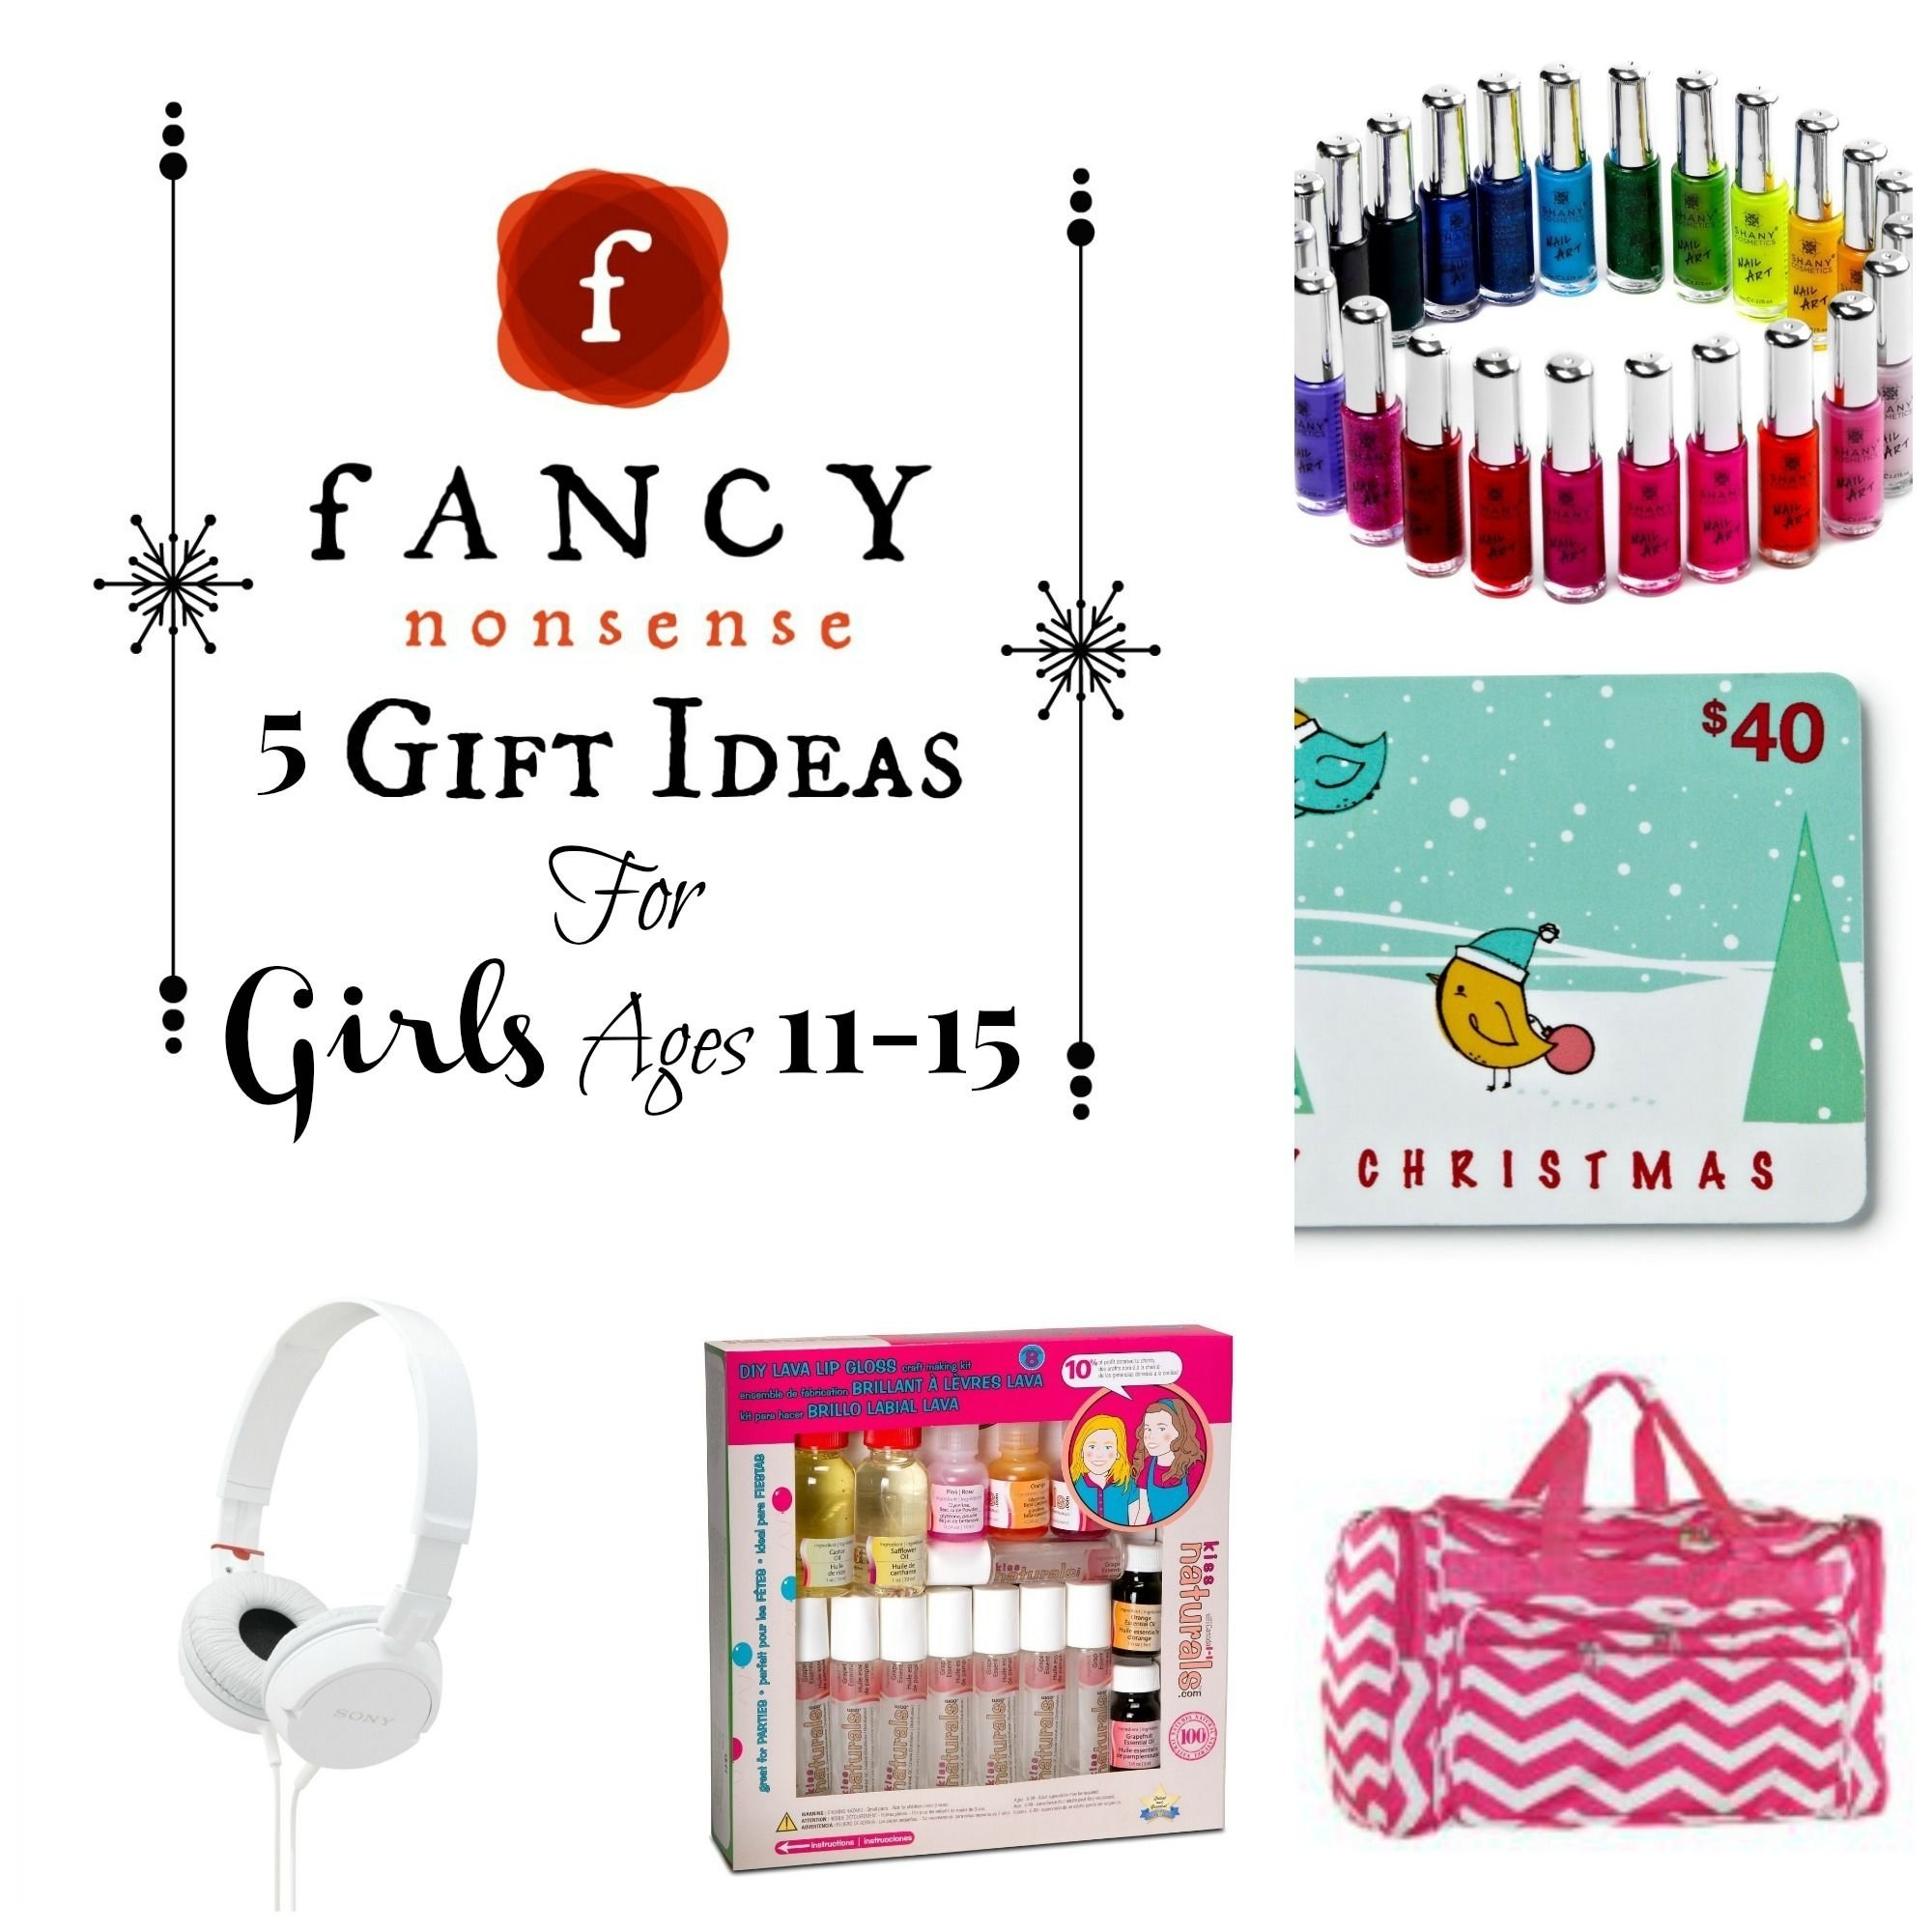 10 Famous Gift Ideas For 15 Yr Old Girl 5 gift ideas for girls ages 11 15 from fancy nonsense gifts for